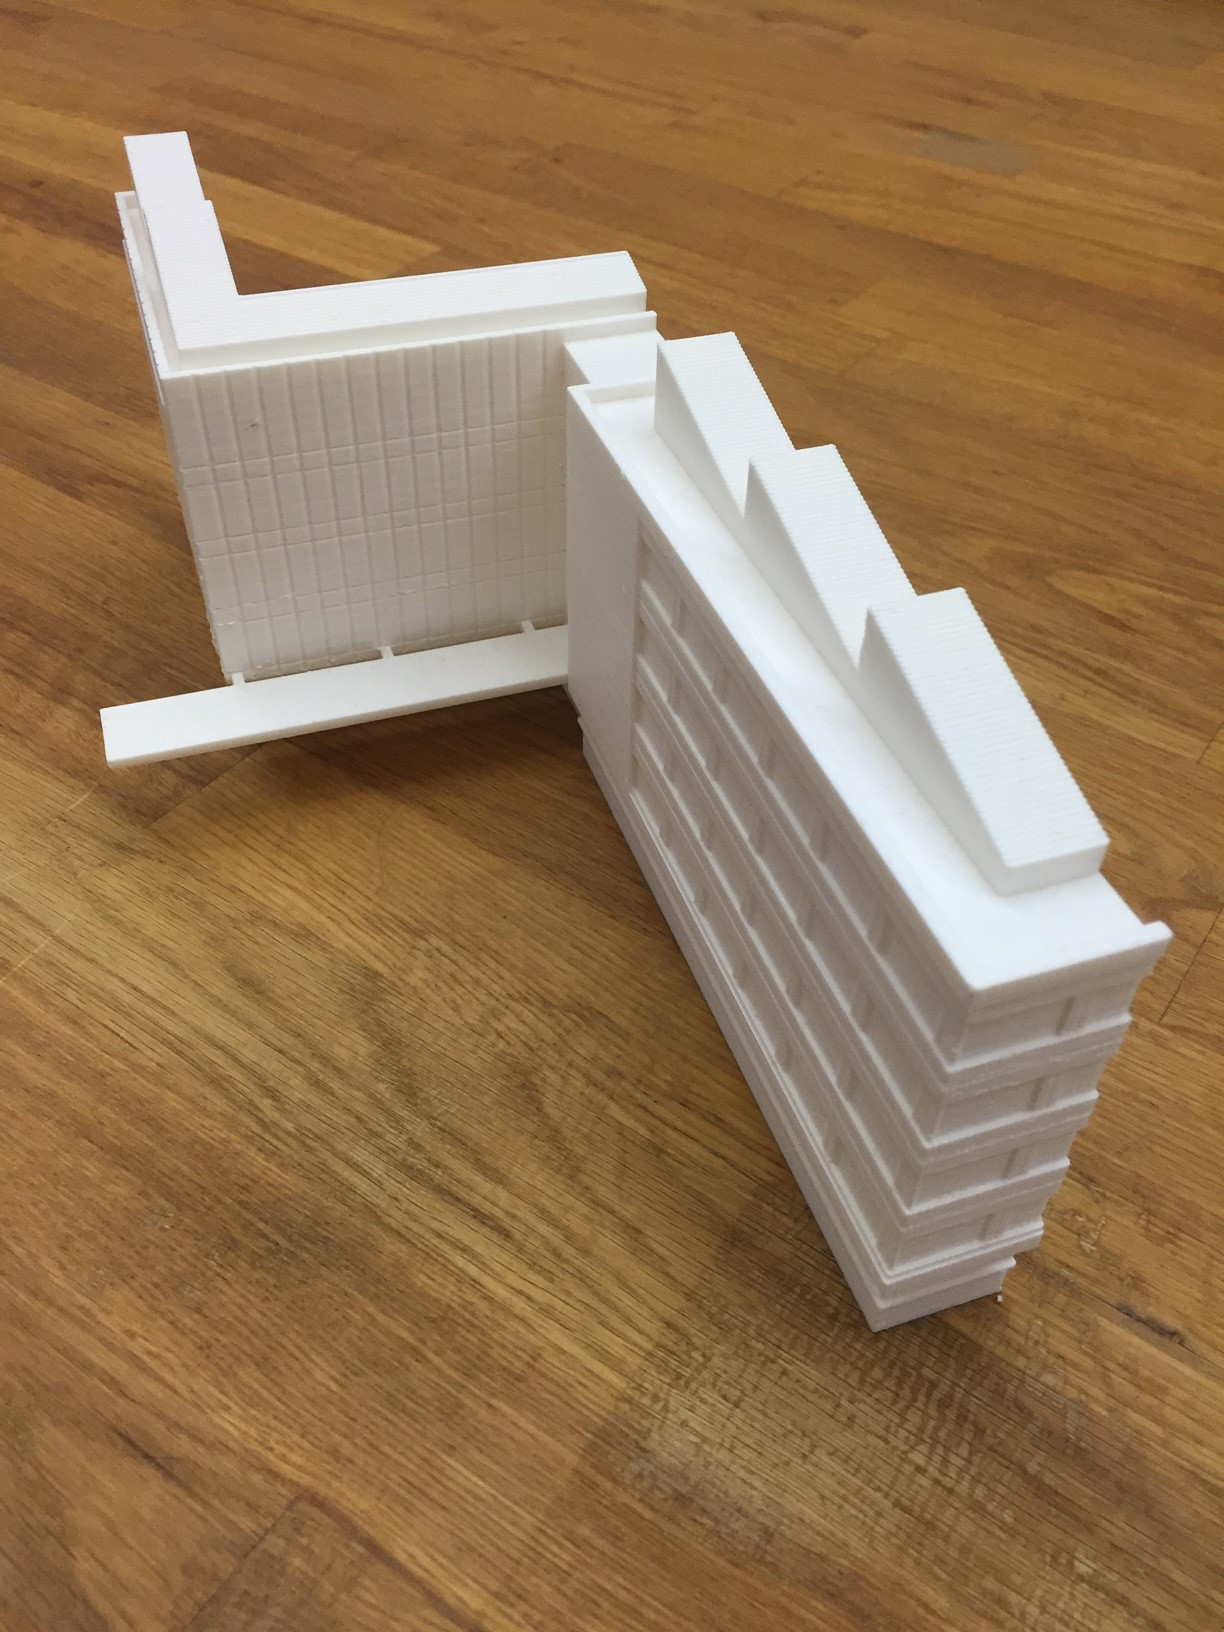 Architectural model making with a 3d printer boosts Making models for 3d printing